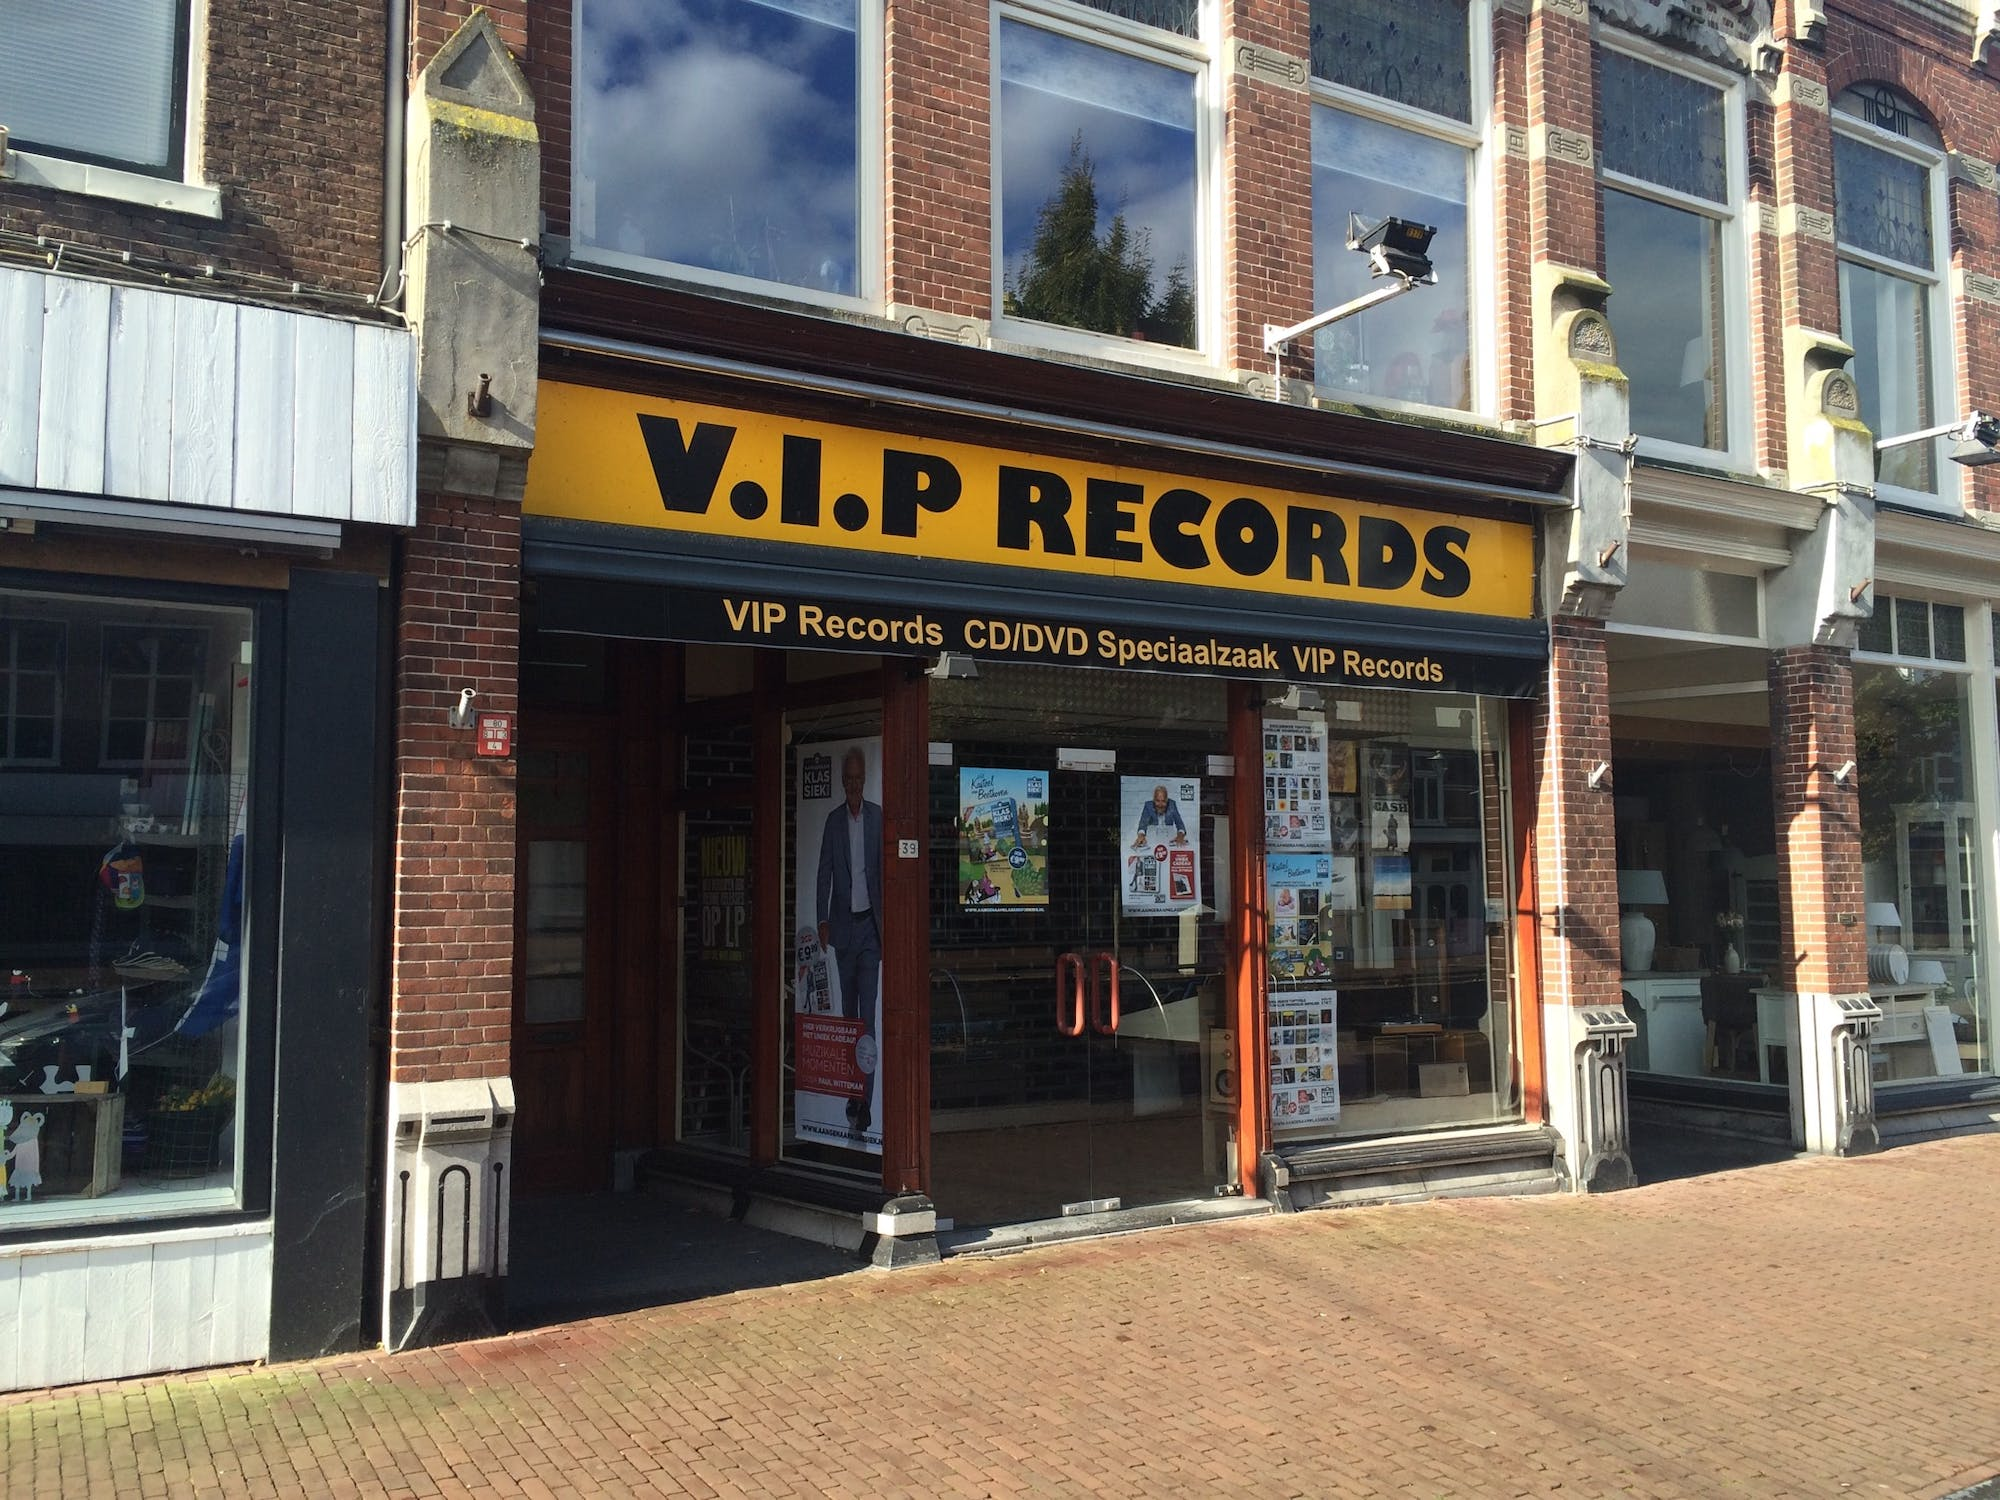 V.I.P. Records - Record Store Image